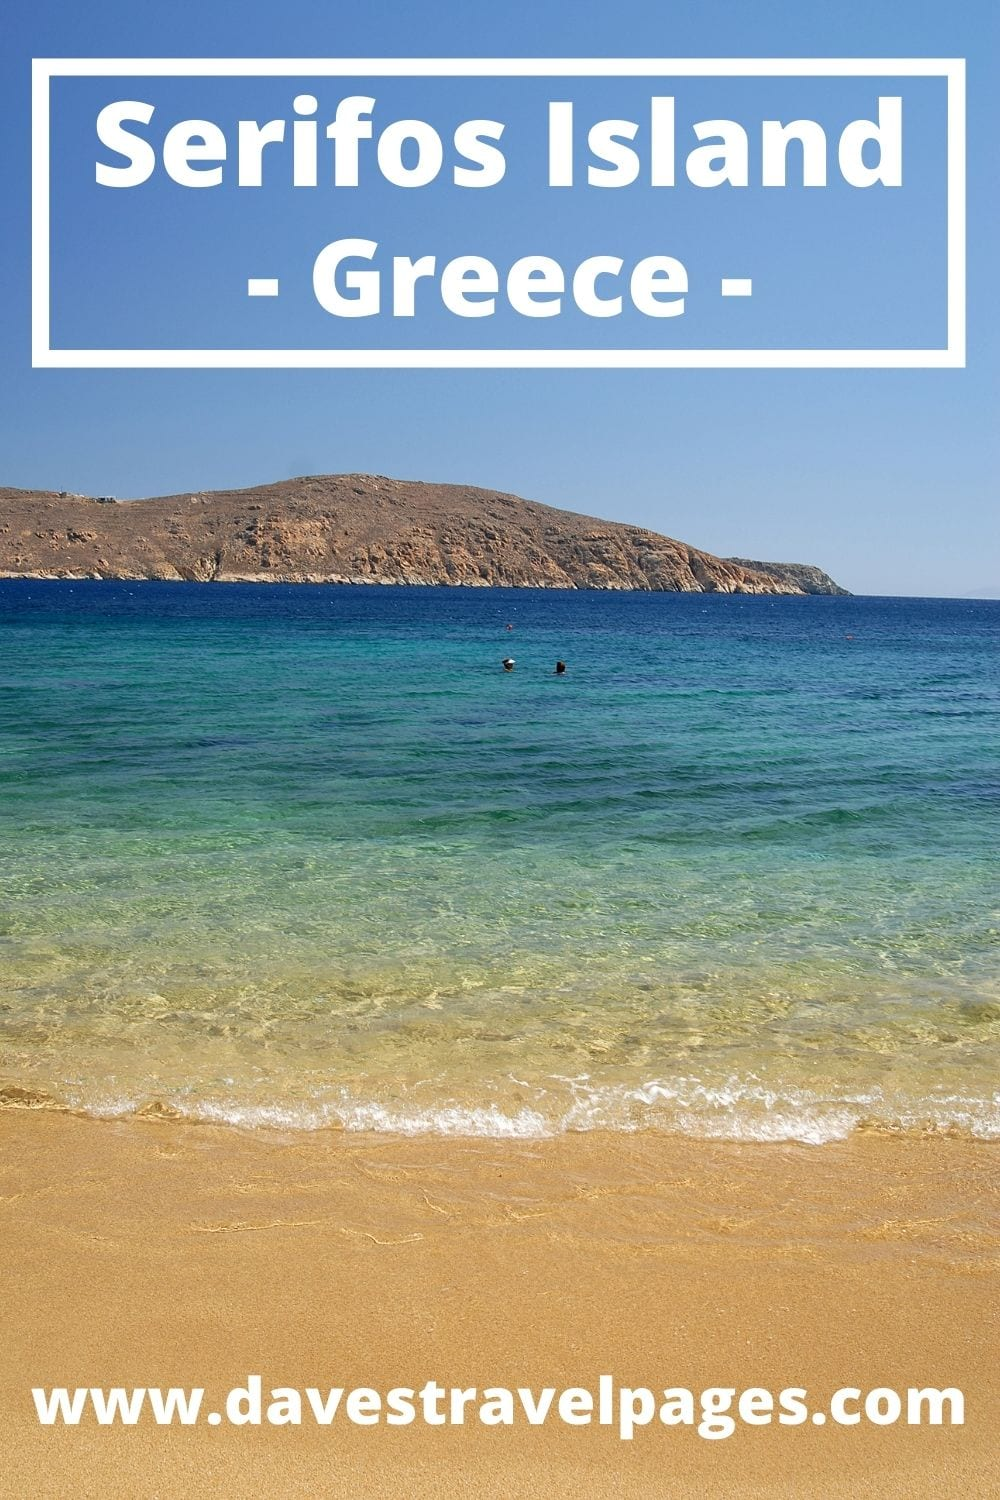 How to get from Athens to Serifos island in Greece